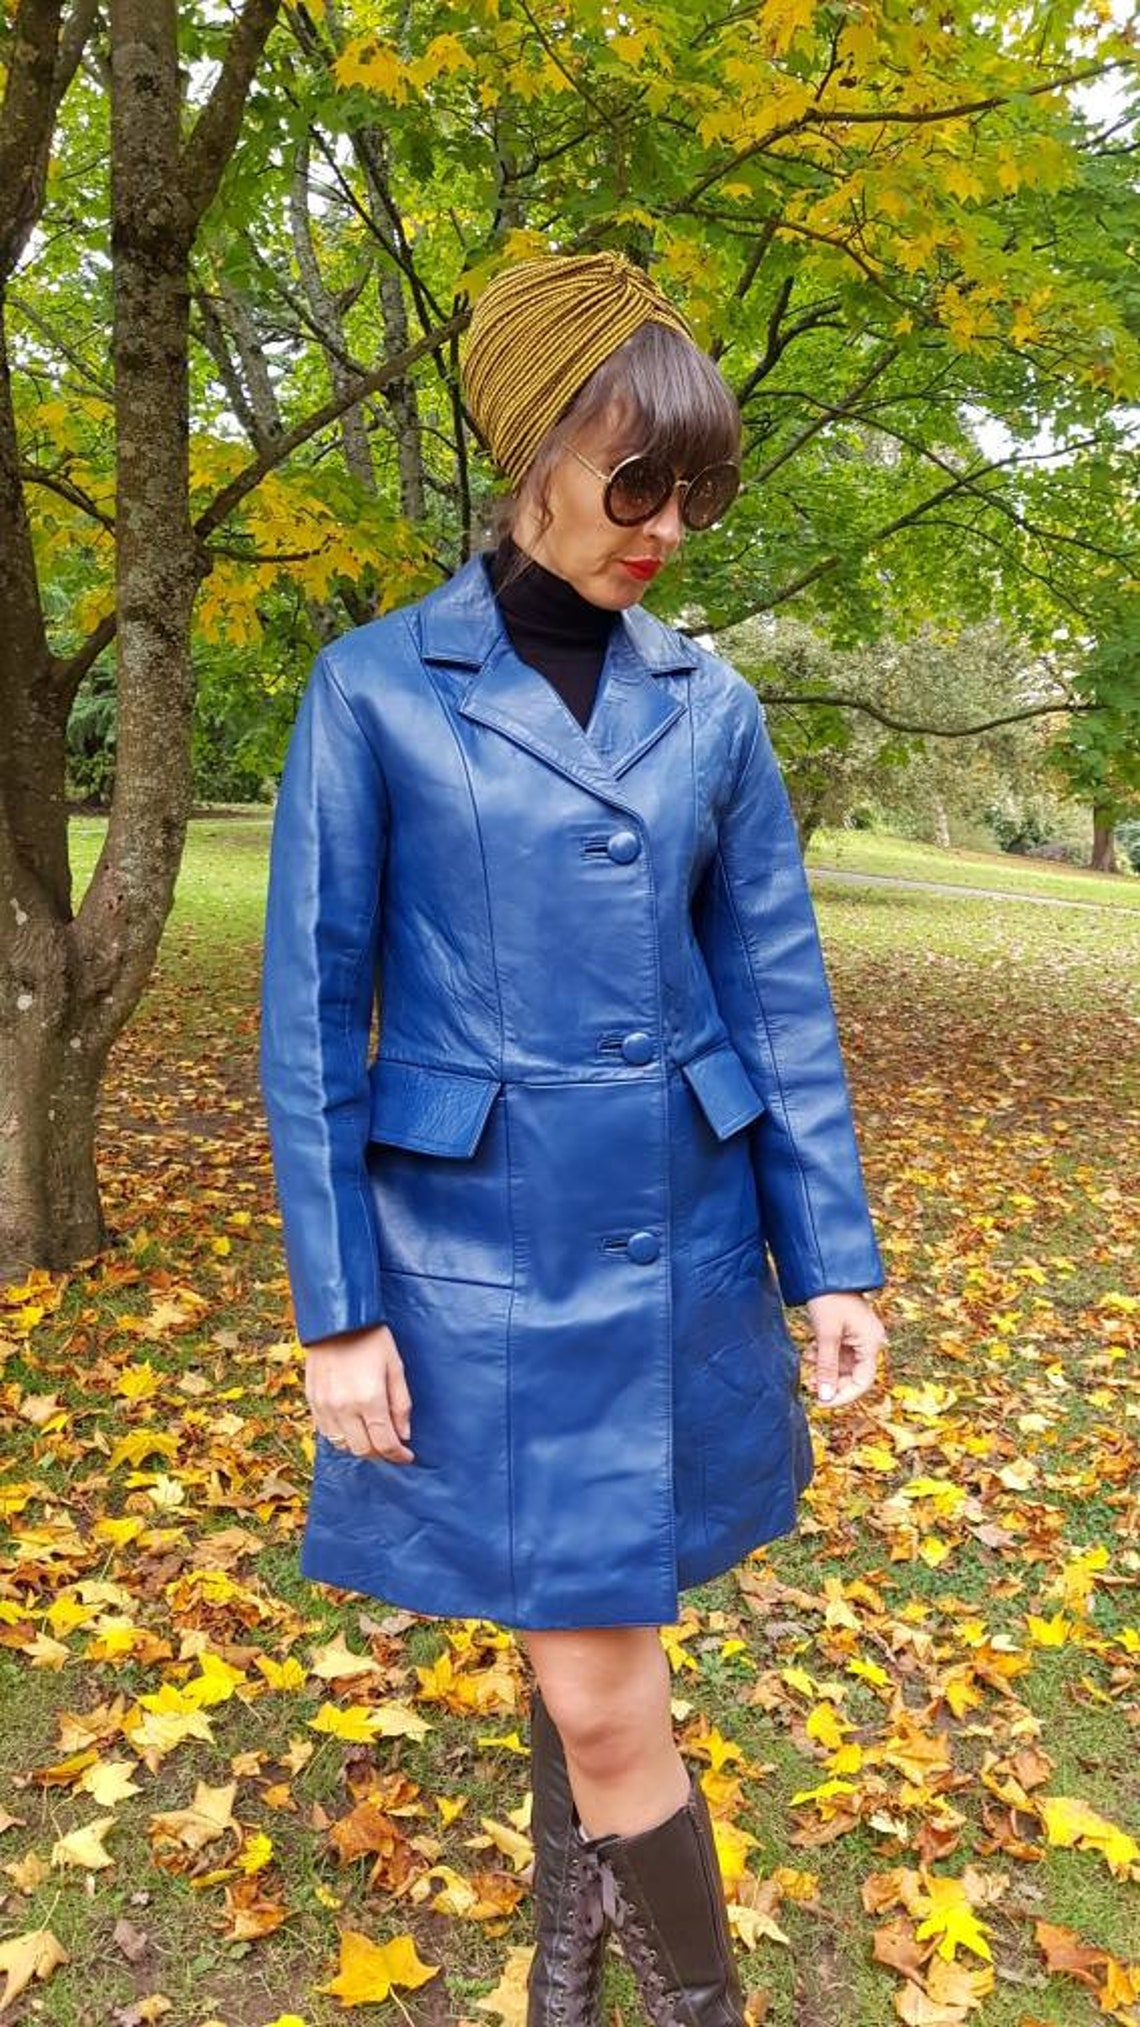 Beautiful Vintage 1960s 60's Mod Blue Leather Patch Pockets Covered Buttons Above The Knee Mini Coat.stunning Leather.small 8 - 10